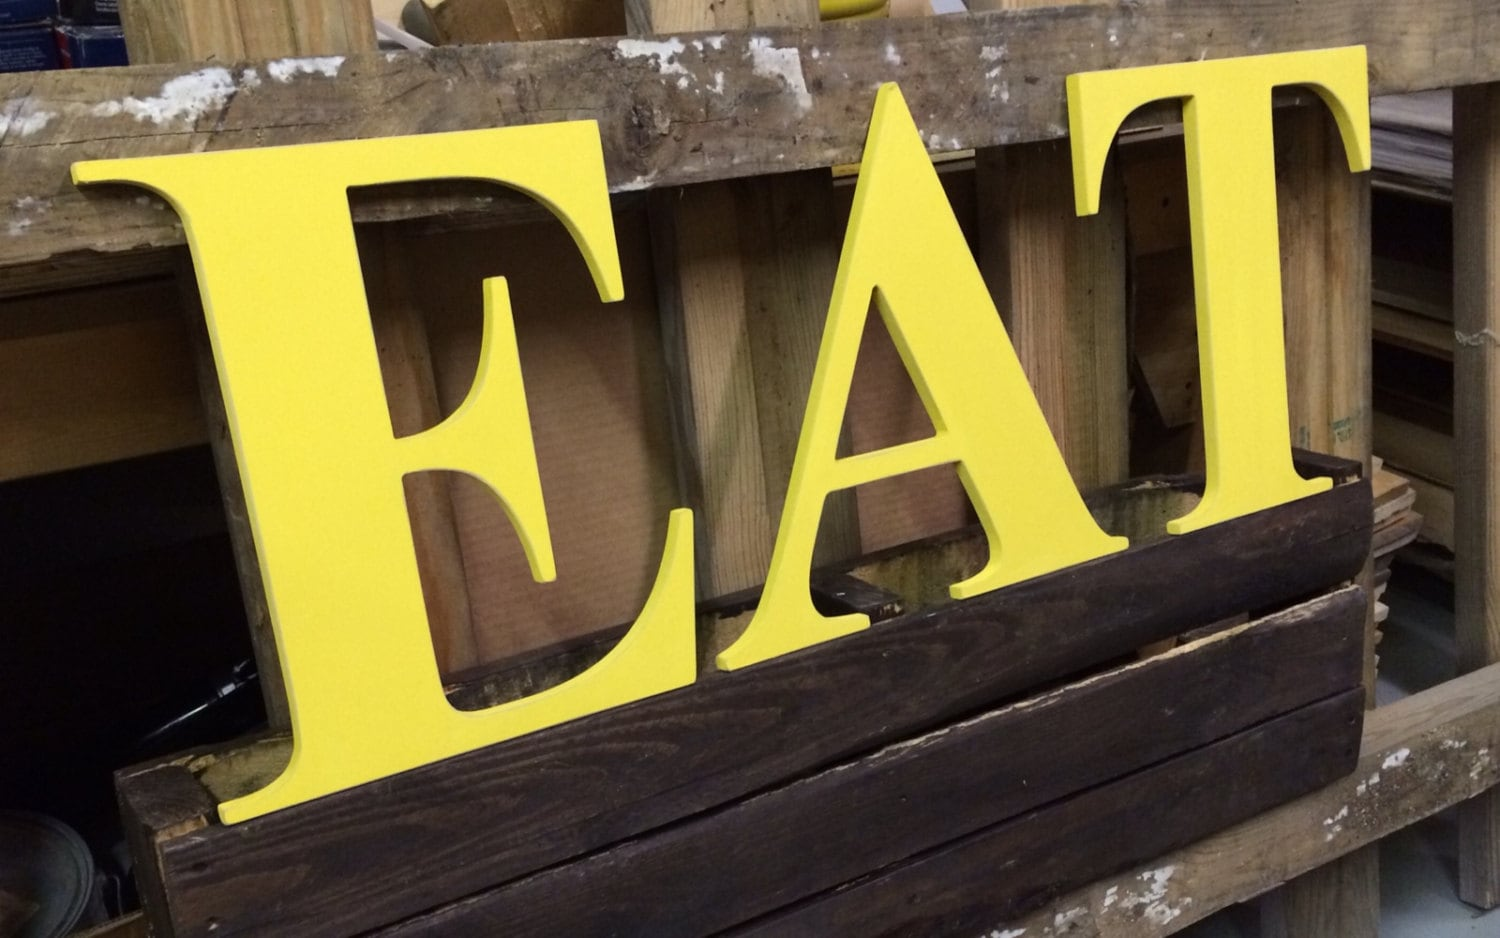 EAT Wooden letters yellow red kitchen farmhouse style capital